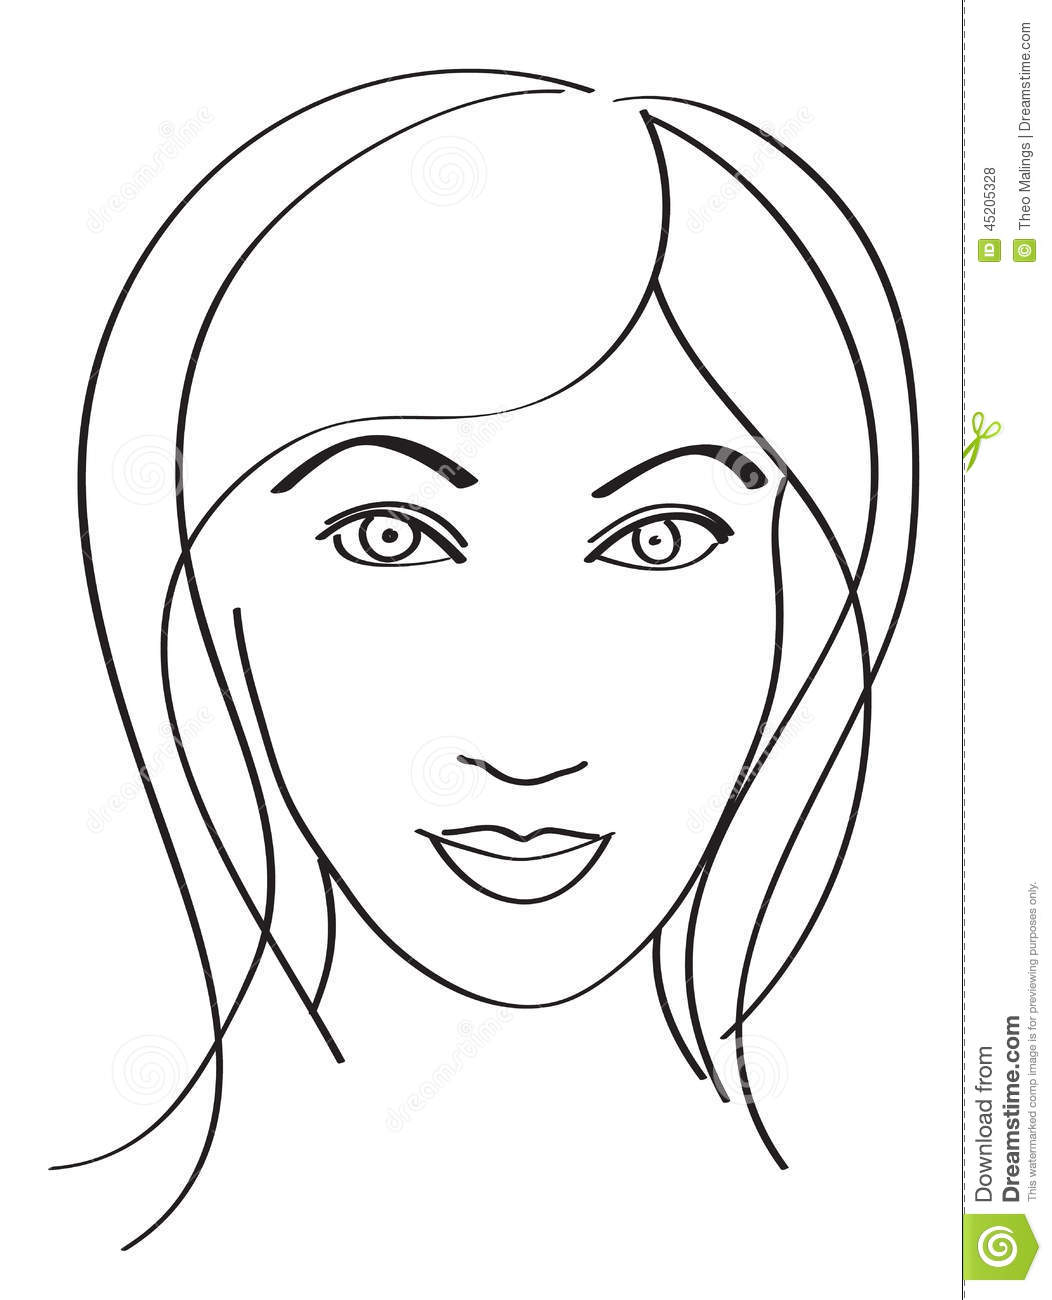 Line Drawing Face Woman : Simple woman s face stock vector illustration of